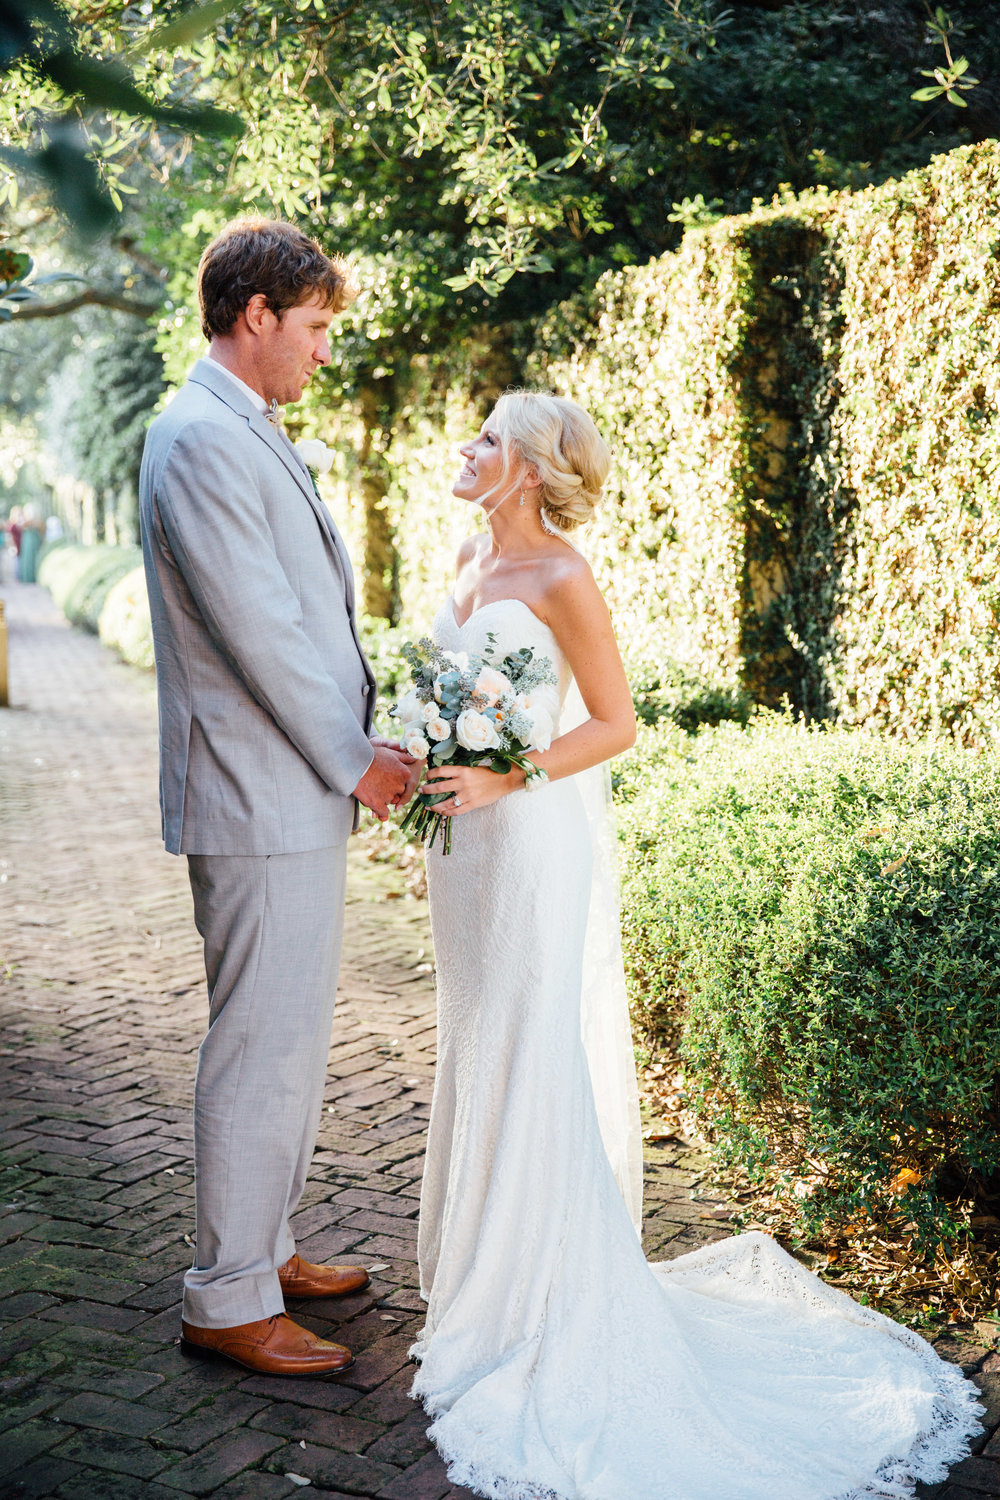 anna-benton-photography-savannah-bridal-boutique-ivory-and-beau-bridal-boutique-ti-adora-7552-lace-wedding-dress-jaclyn-jordan-anne-veil-southern-wedding-savannah-wedding-coastal-wedidng-savannah-wedding-planner-savannah-florist-savannah-weddings-15.jpg